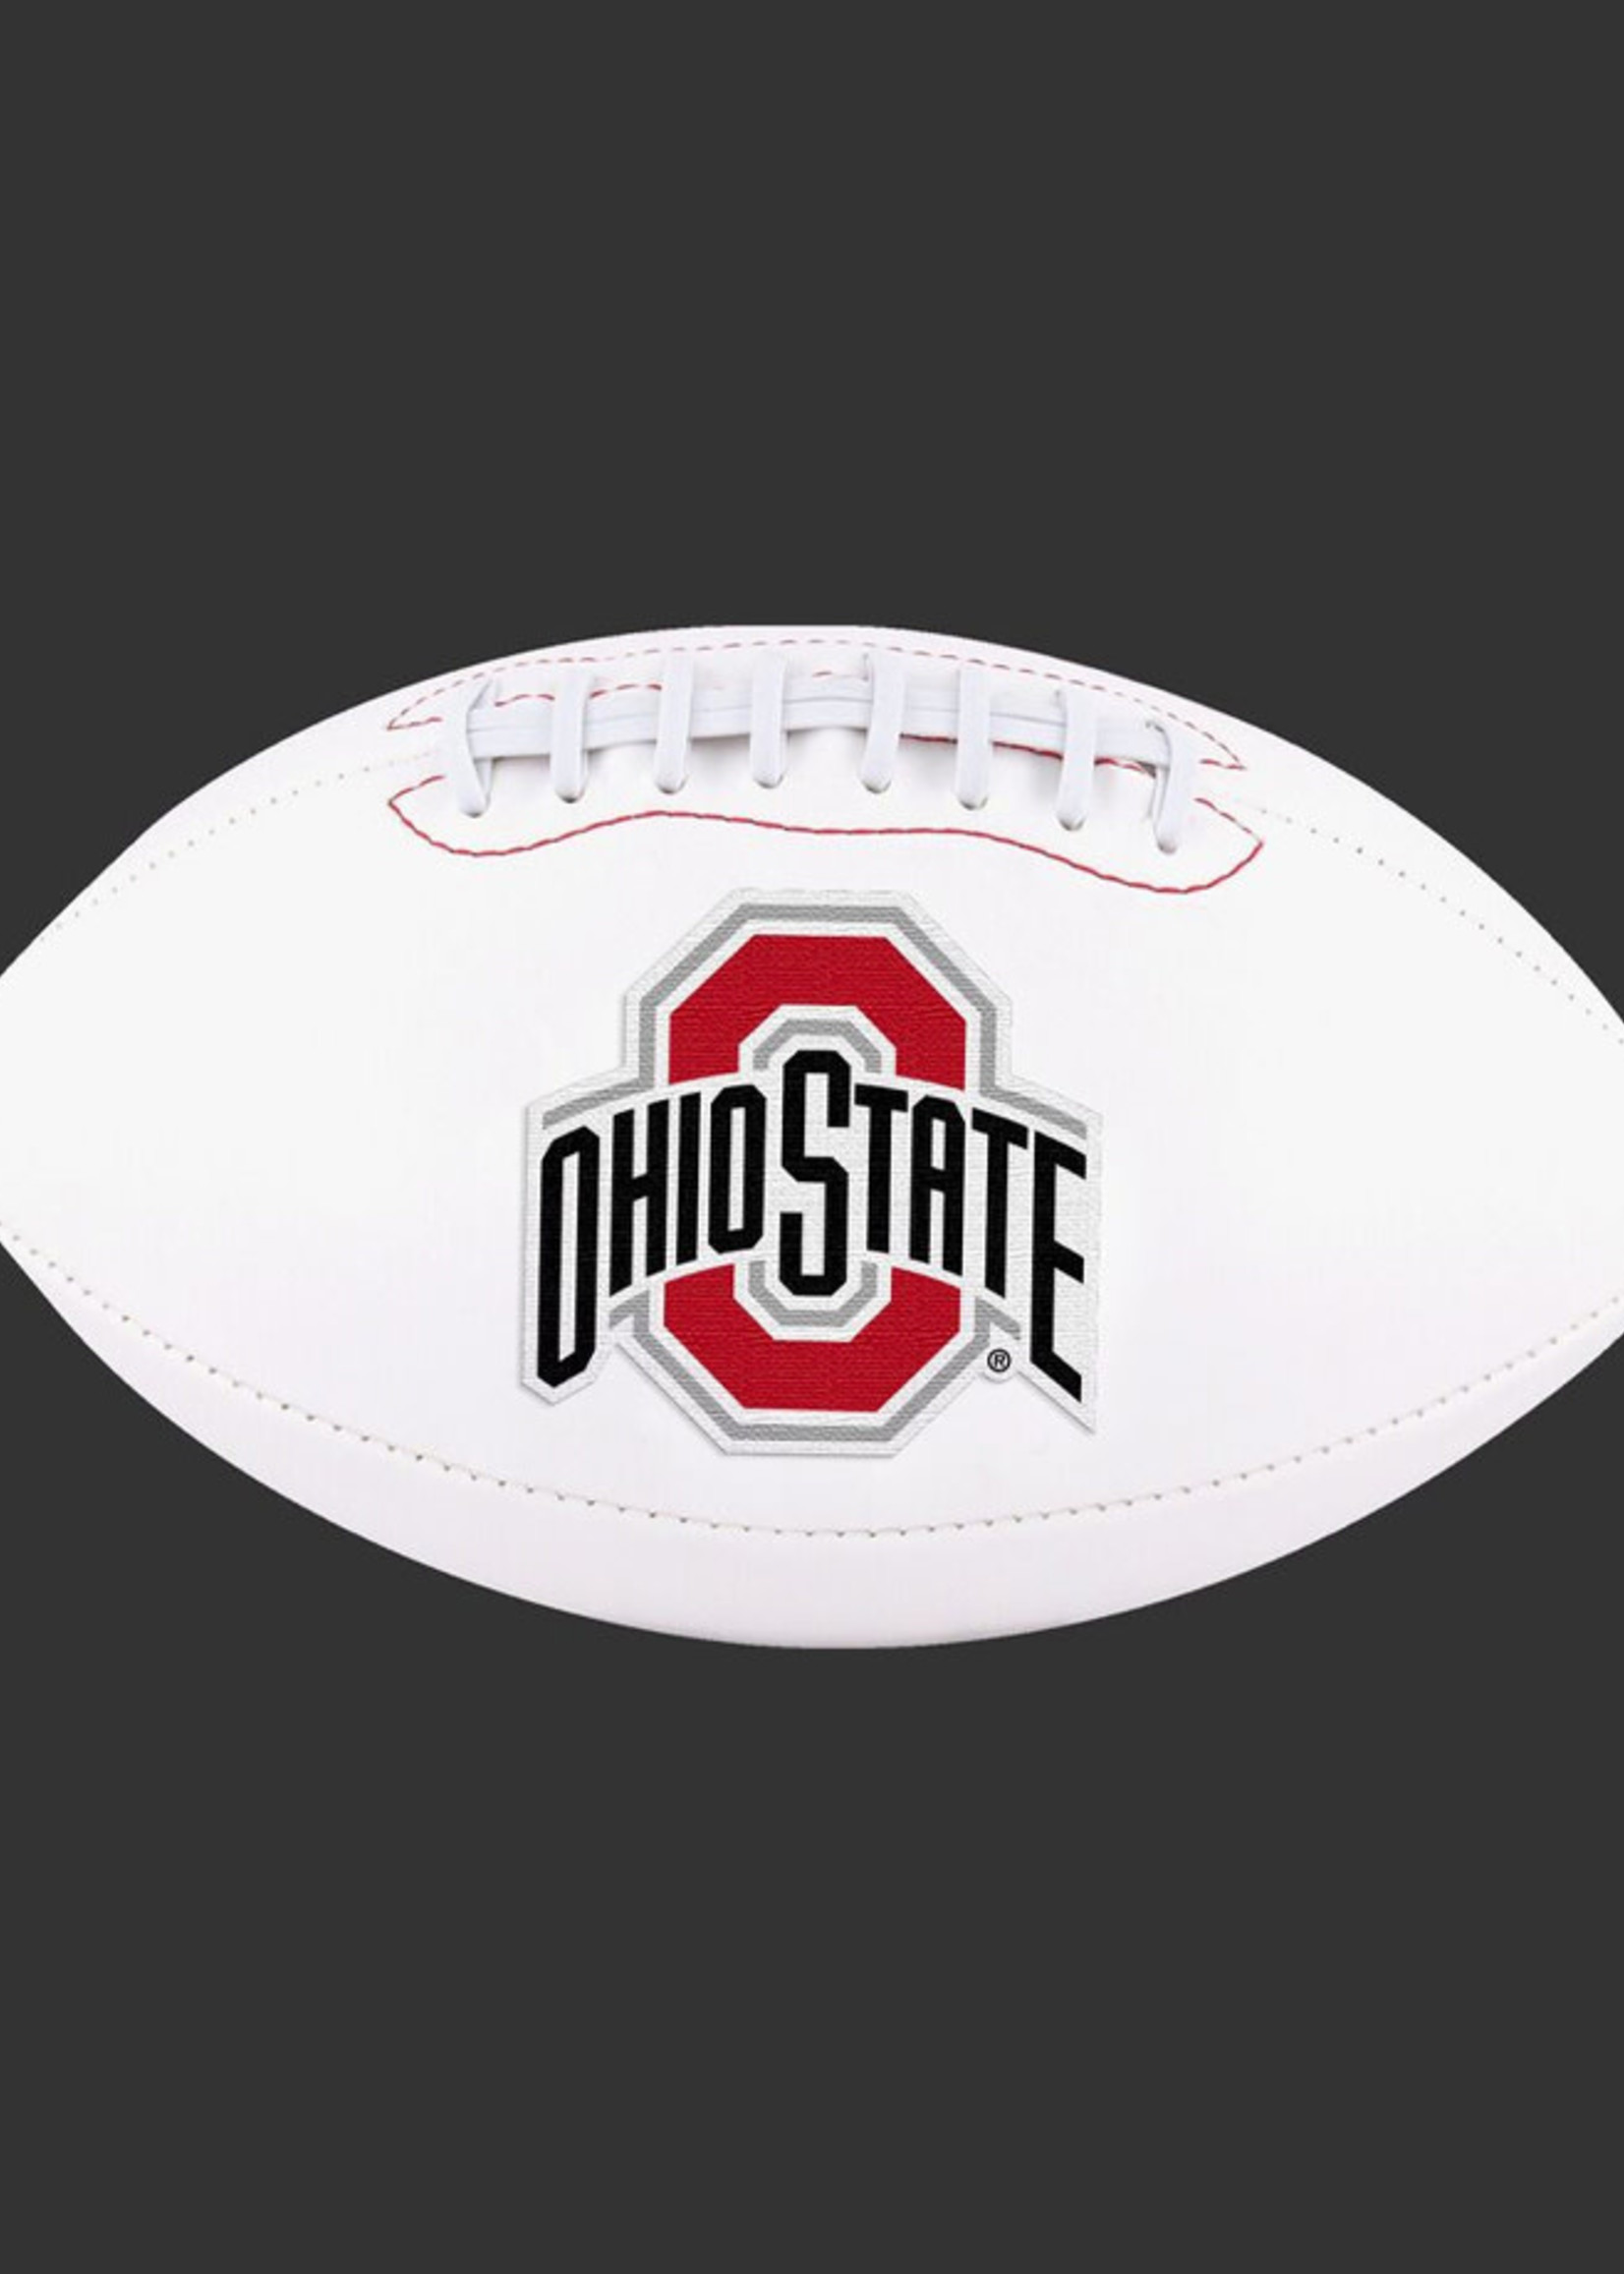 Ohio State Buckeyes Autograph Football with Pen